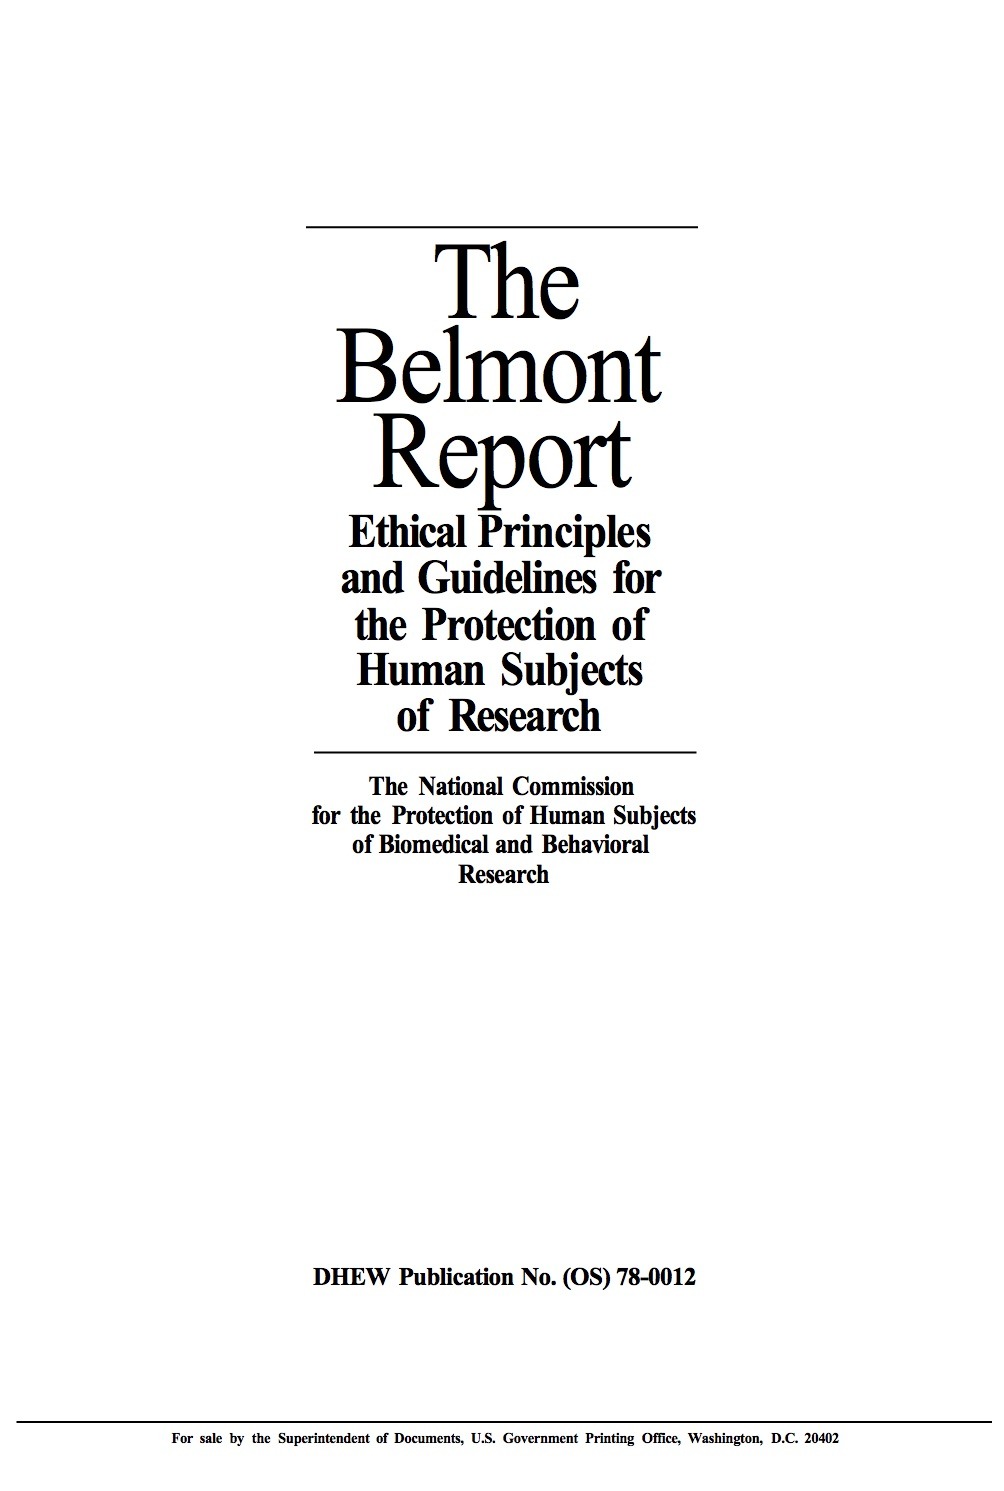 the belmont report -briefly summarize the belmont report -it is clear that the belmont report impacts researchers do you think that the belmont report has any impact or - 1415611.